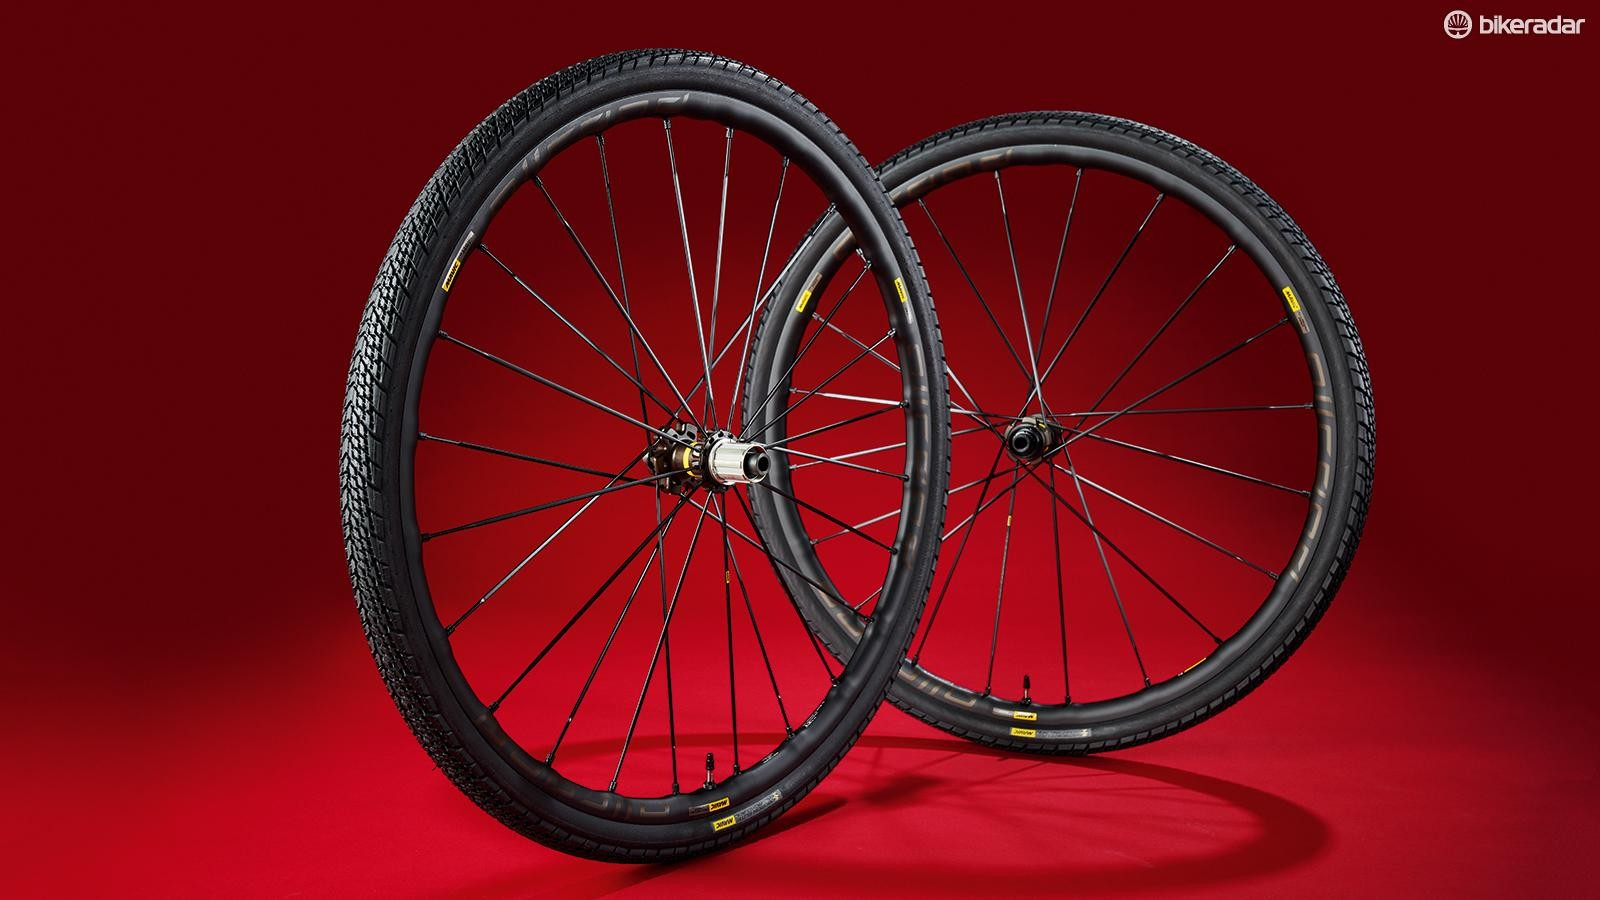 Extended, multi-terrain rides are this wheelsets' natural territory